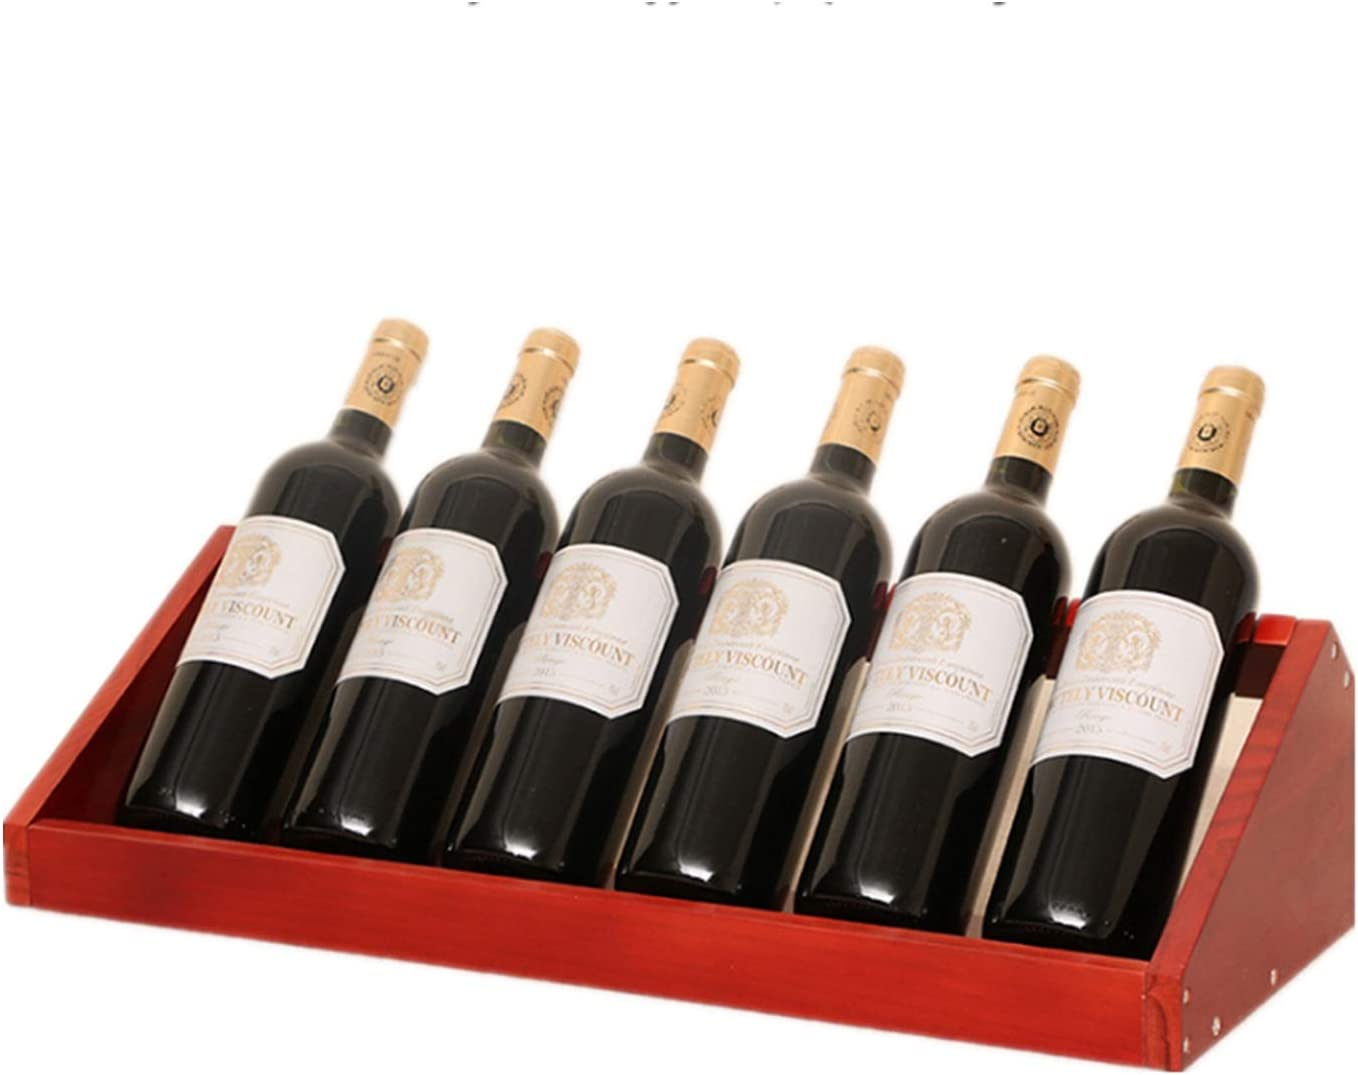 Shipping included Small Wine Safety and trust Racks Countertop Holder Tabletop Bottle Counter